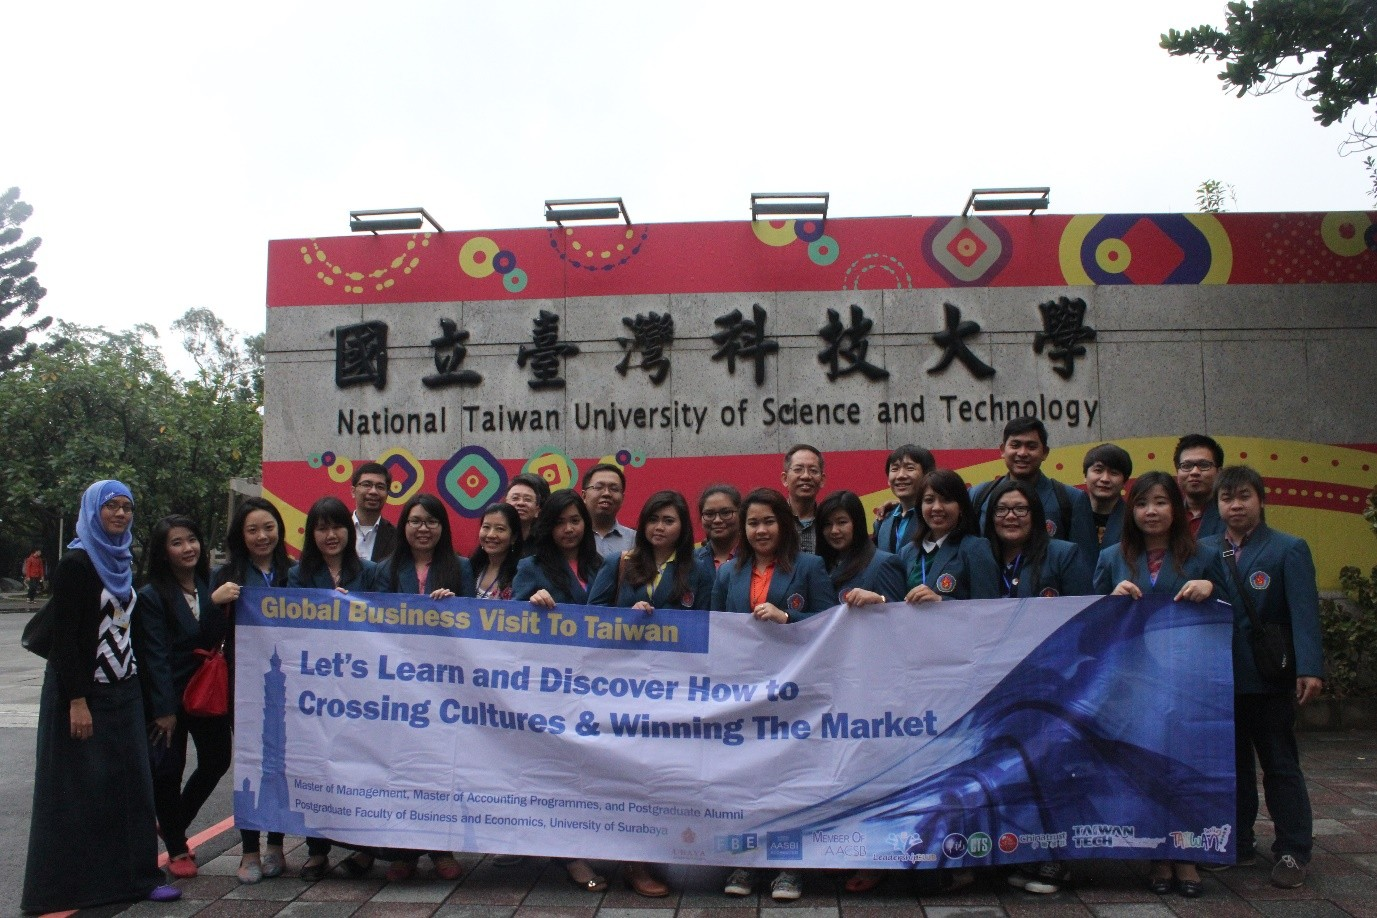 Crossing Culture, Winning The Market: Taiwan Business Visit